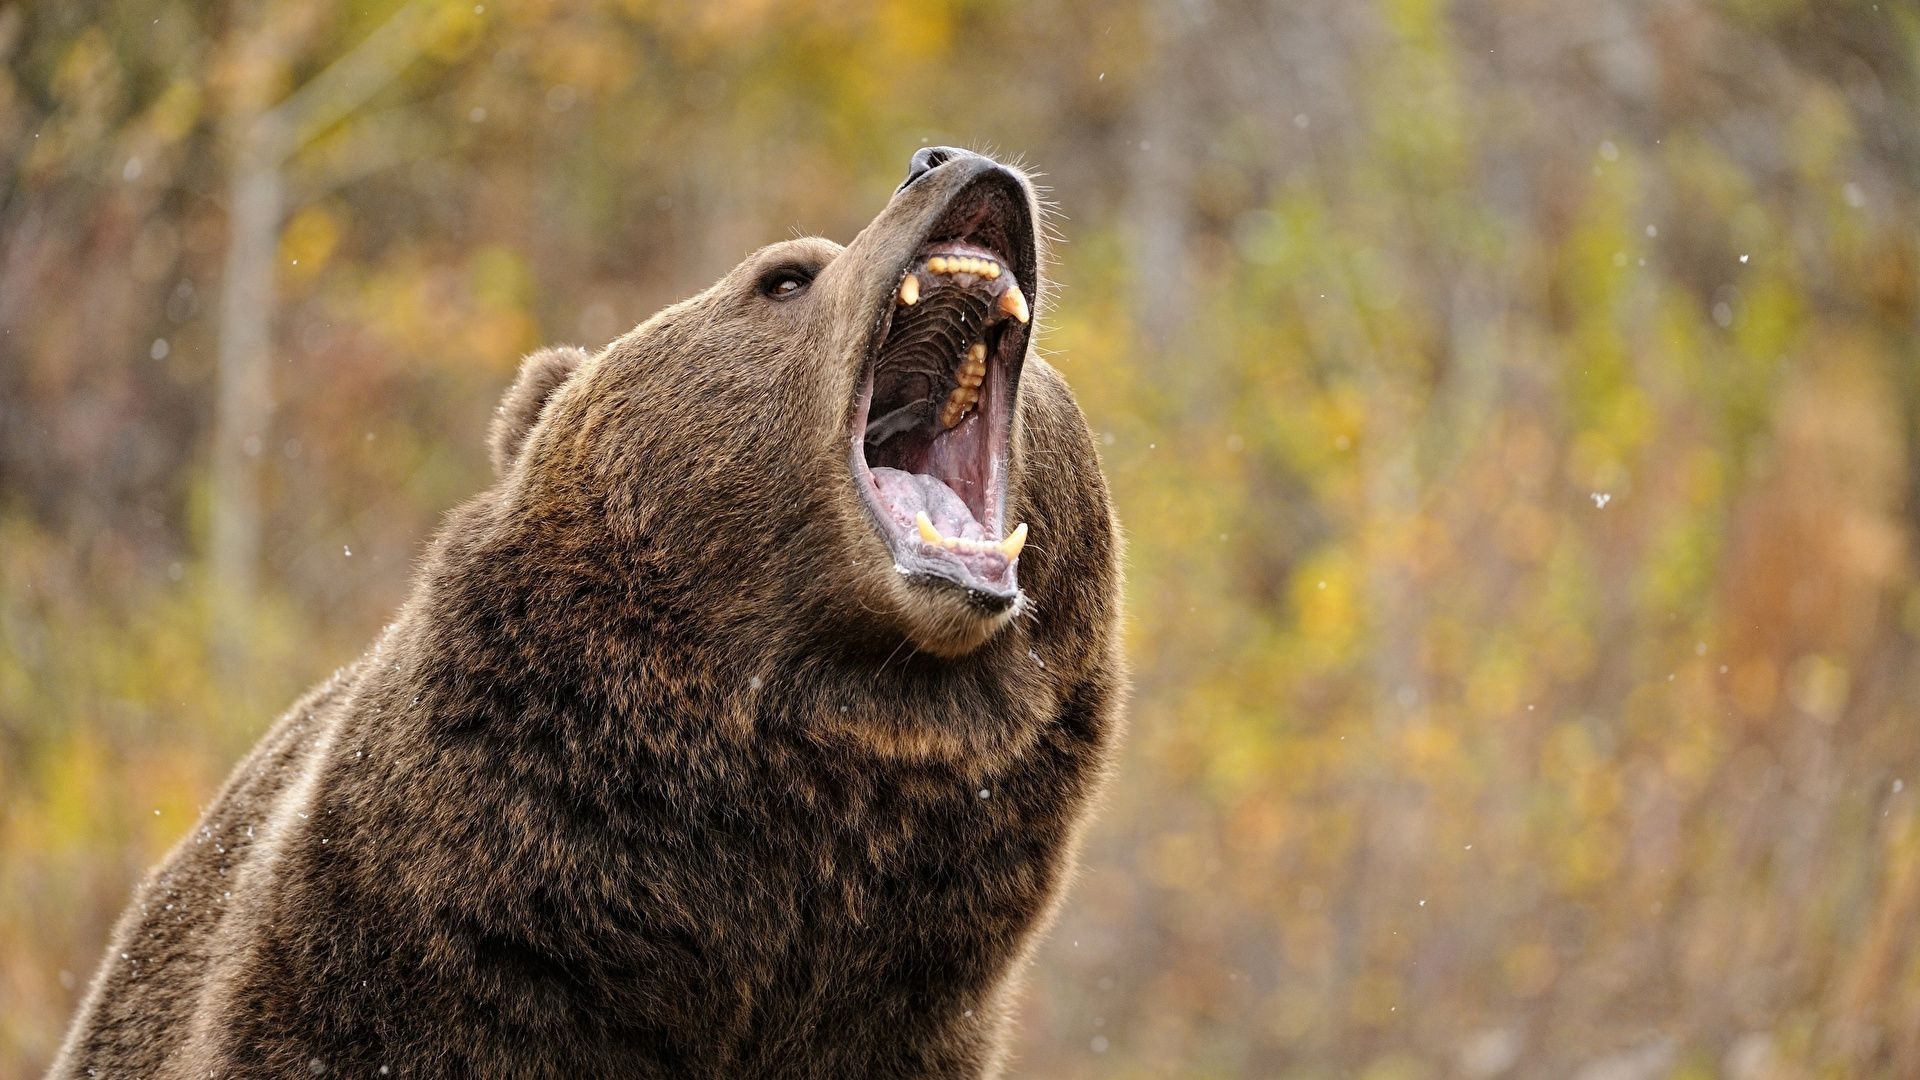 Wallpaper Brown Bear Bears Animals Angry Grizzly Bear Angry Ry